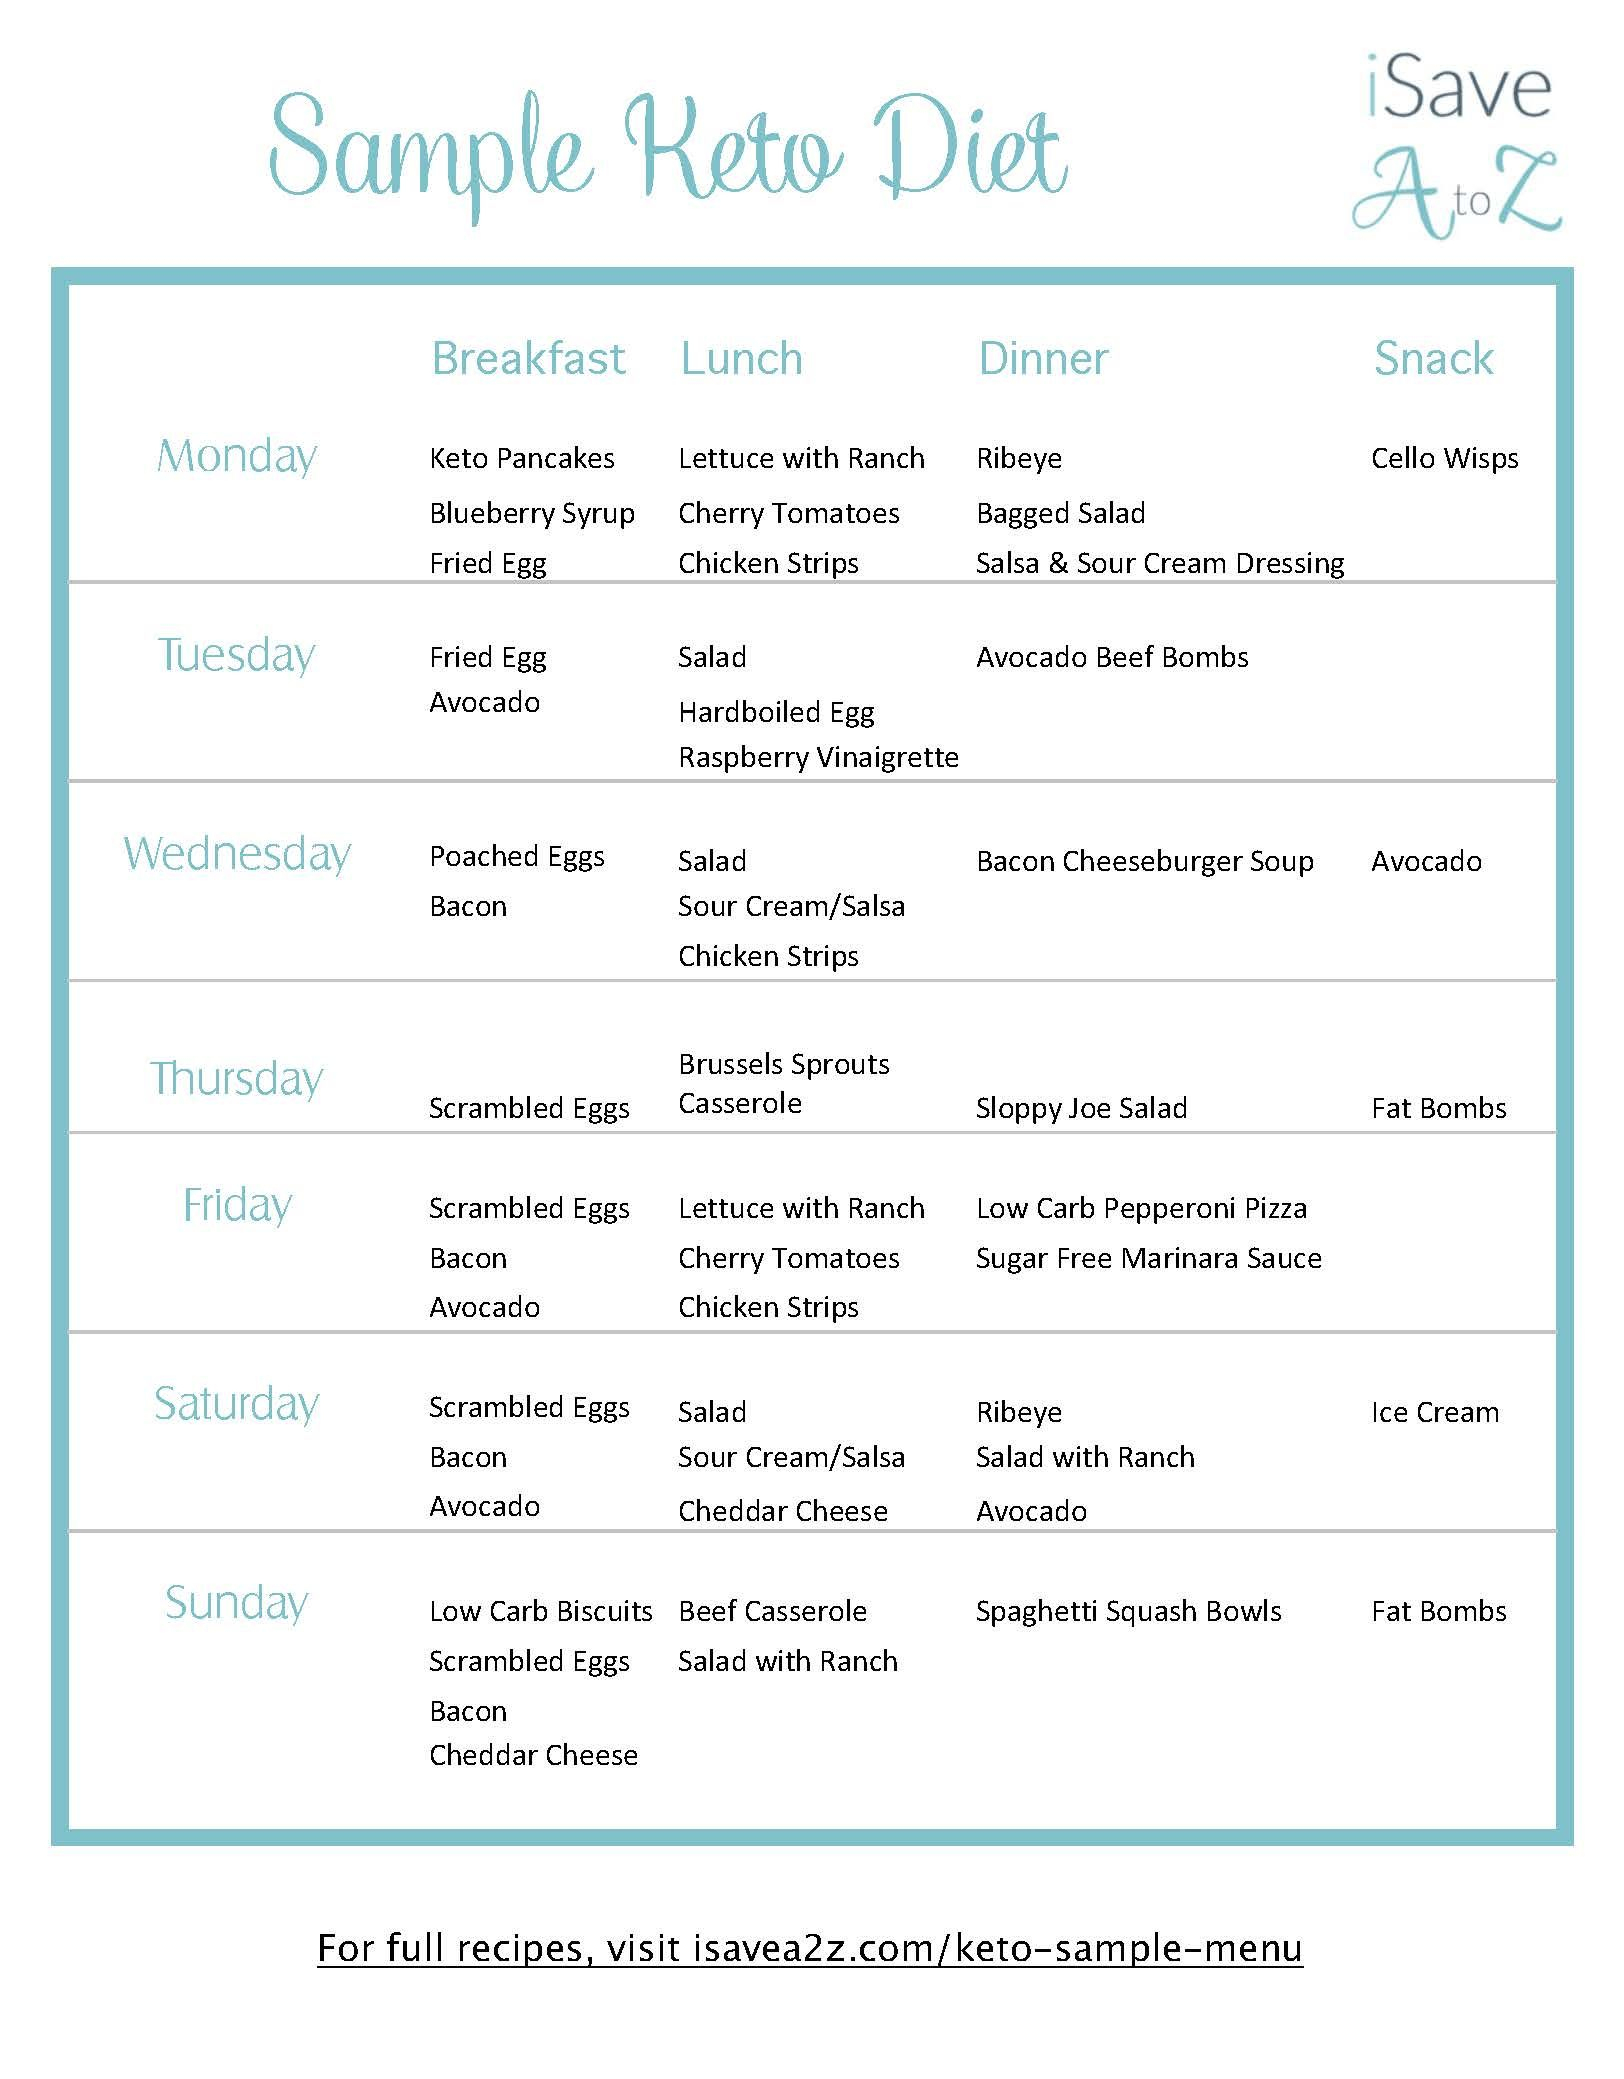 Grab This Printable 7 Day Keto Sample Menu Plan | Recipes - Free Printable Low Carb Diet Plans